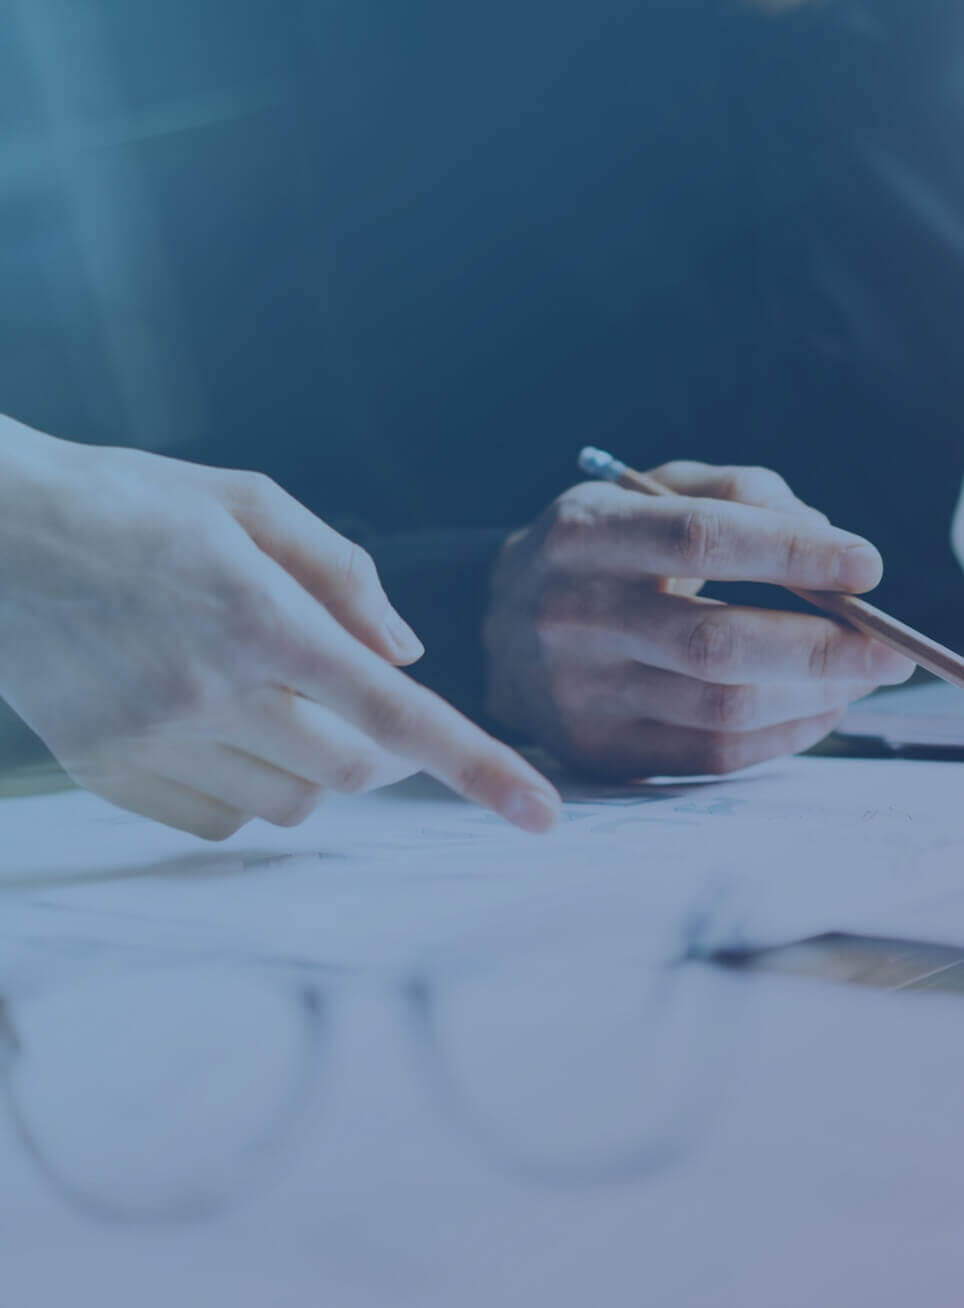 Two people's hands with documents, a pen, and eyeglasses on a table.